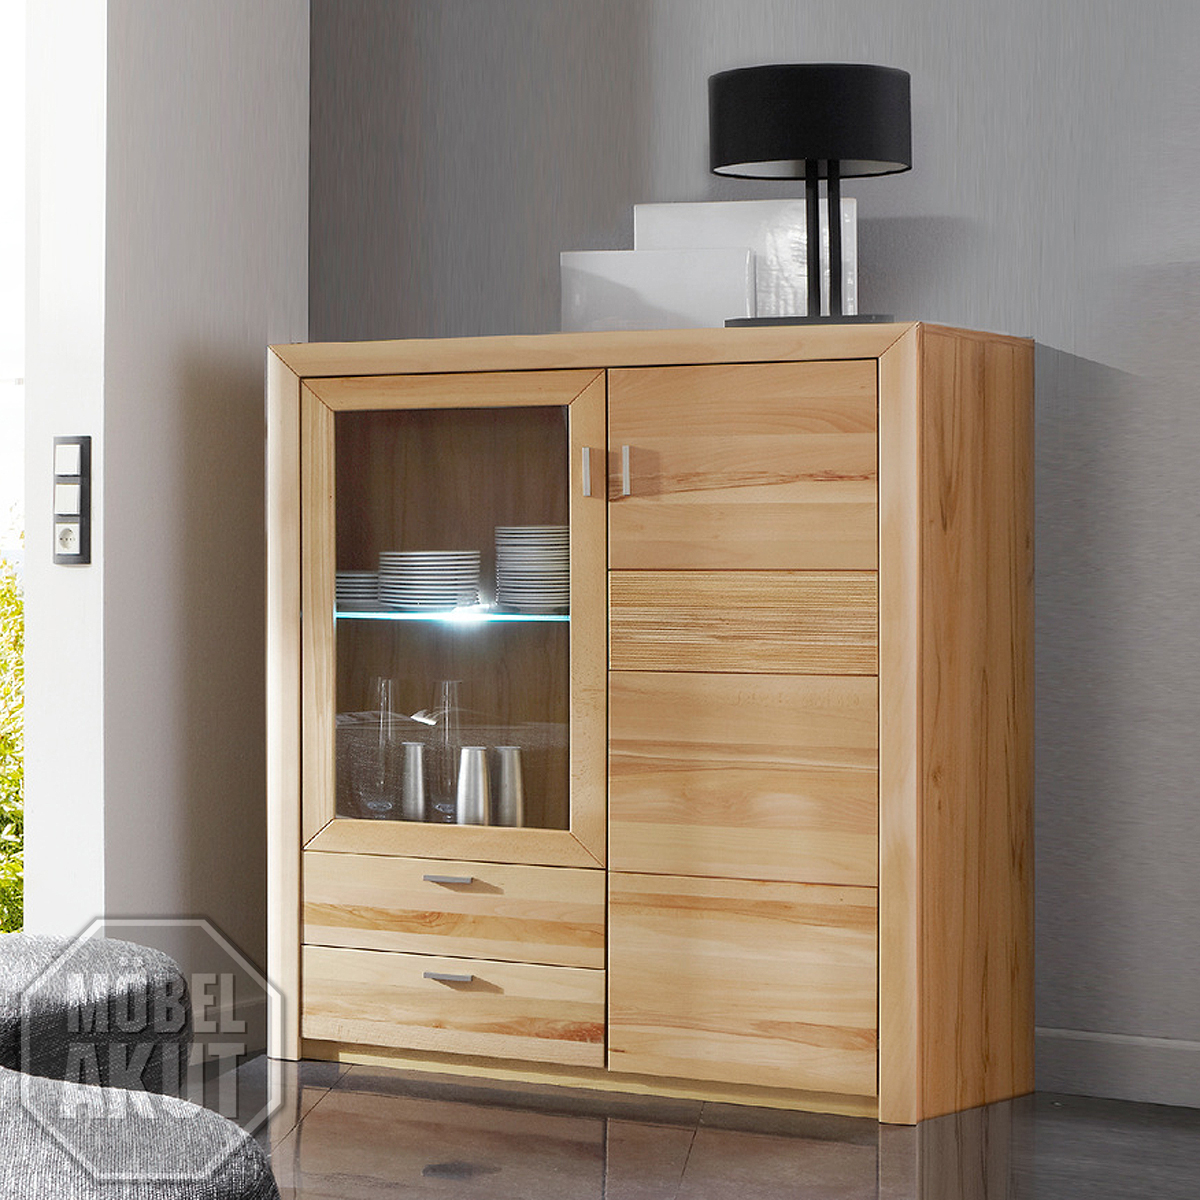 highboard passepartout 06a wohnzimmer schrank in kernbuche massiv ebay. Black Bedroom Furniture Sets. Home Design Ideas